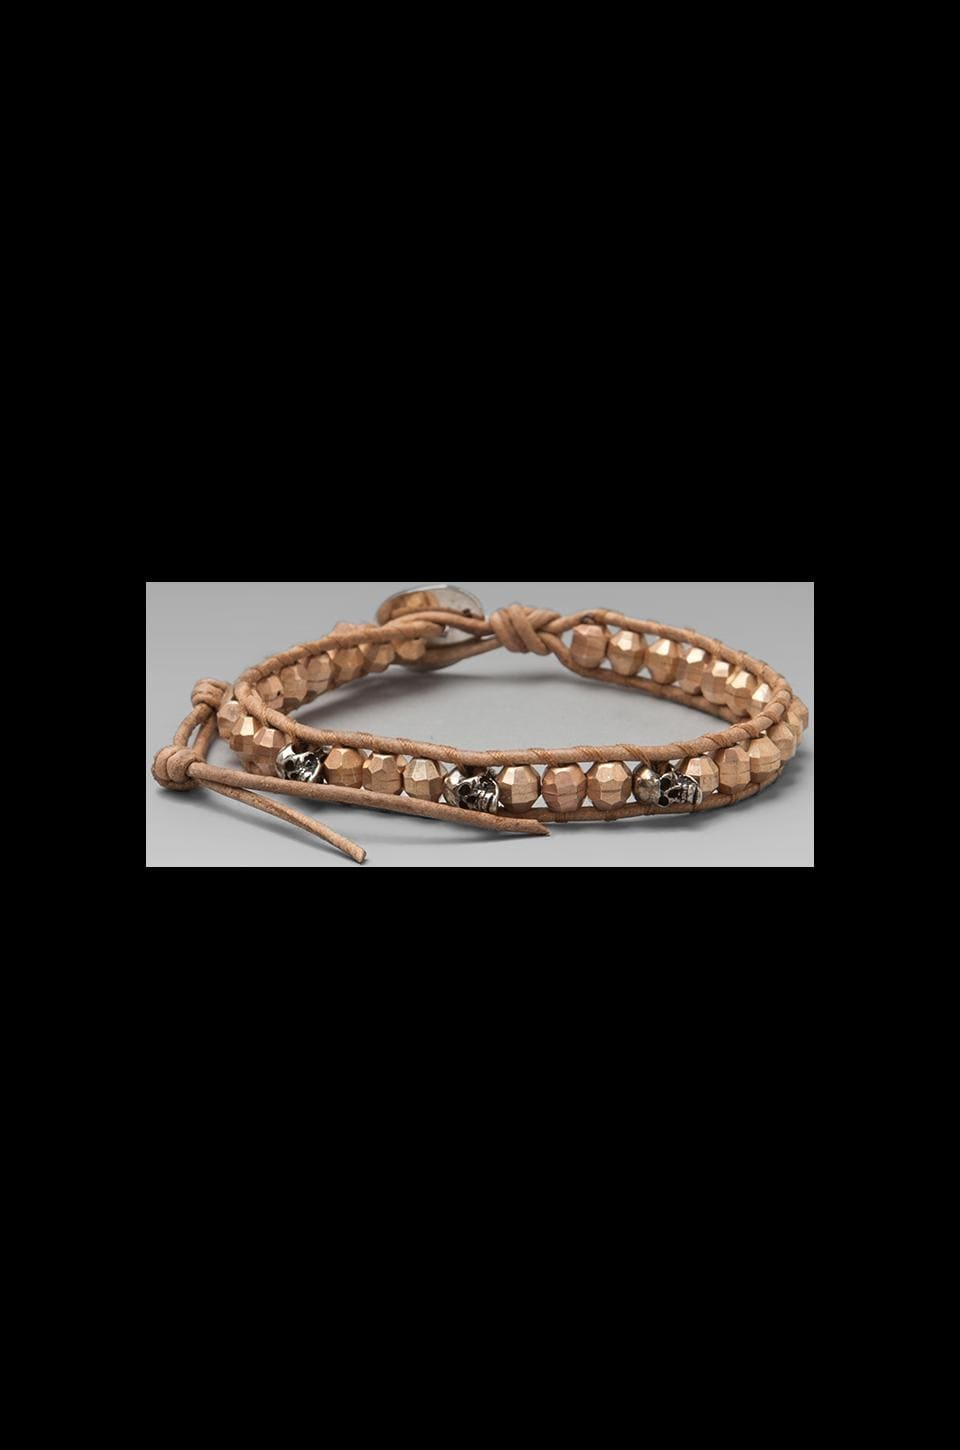 CHAN LUU Bracelet in Rose Gold/Beige